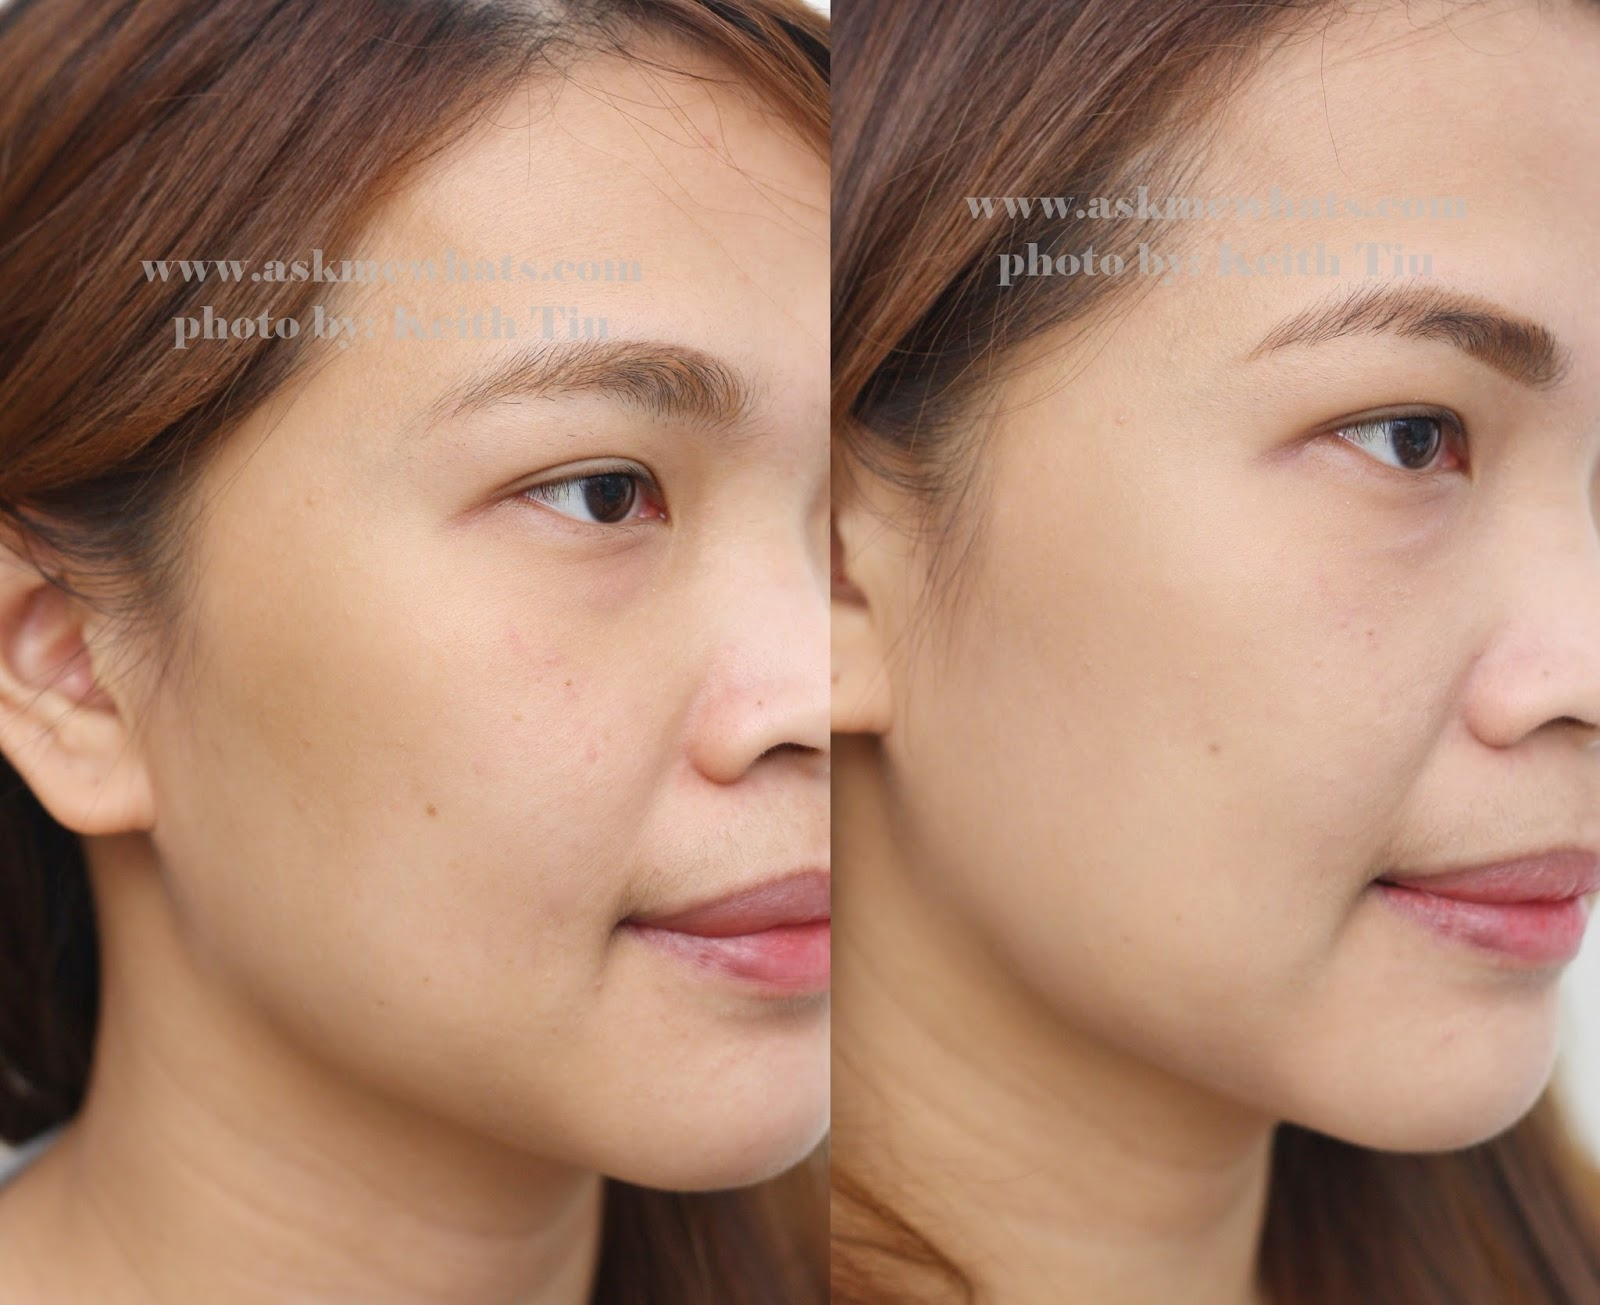 before and after photo using L'Oreal Paris Lucent Magique BB Skin Luminizing BB Cream SPF19